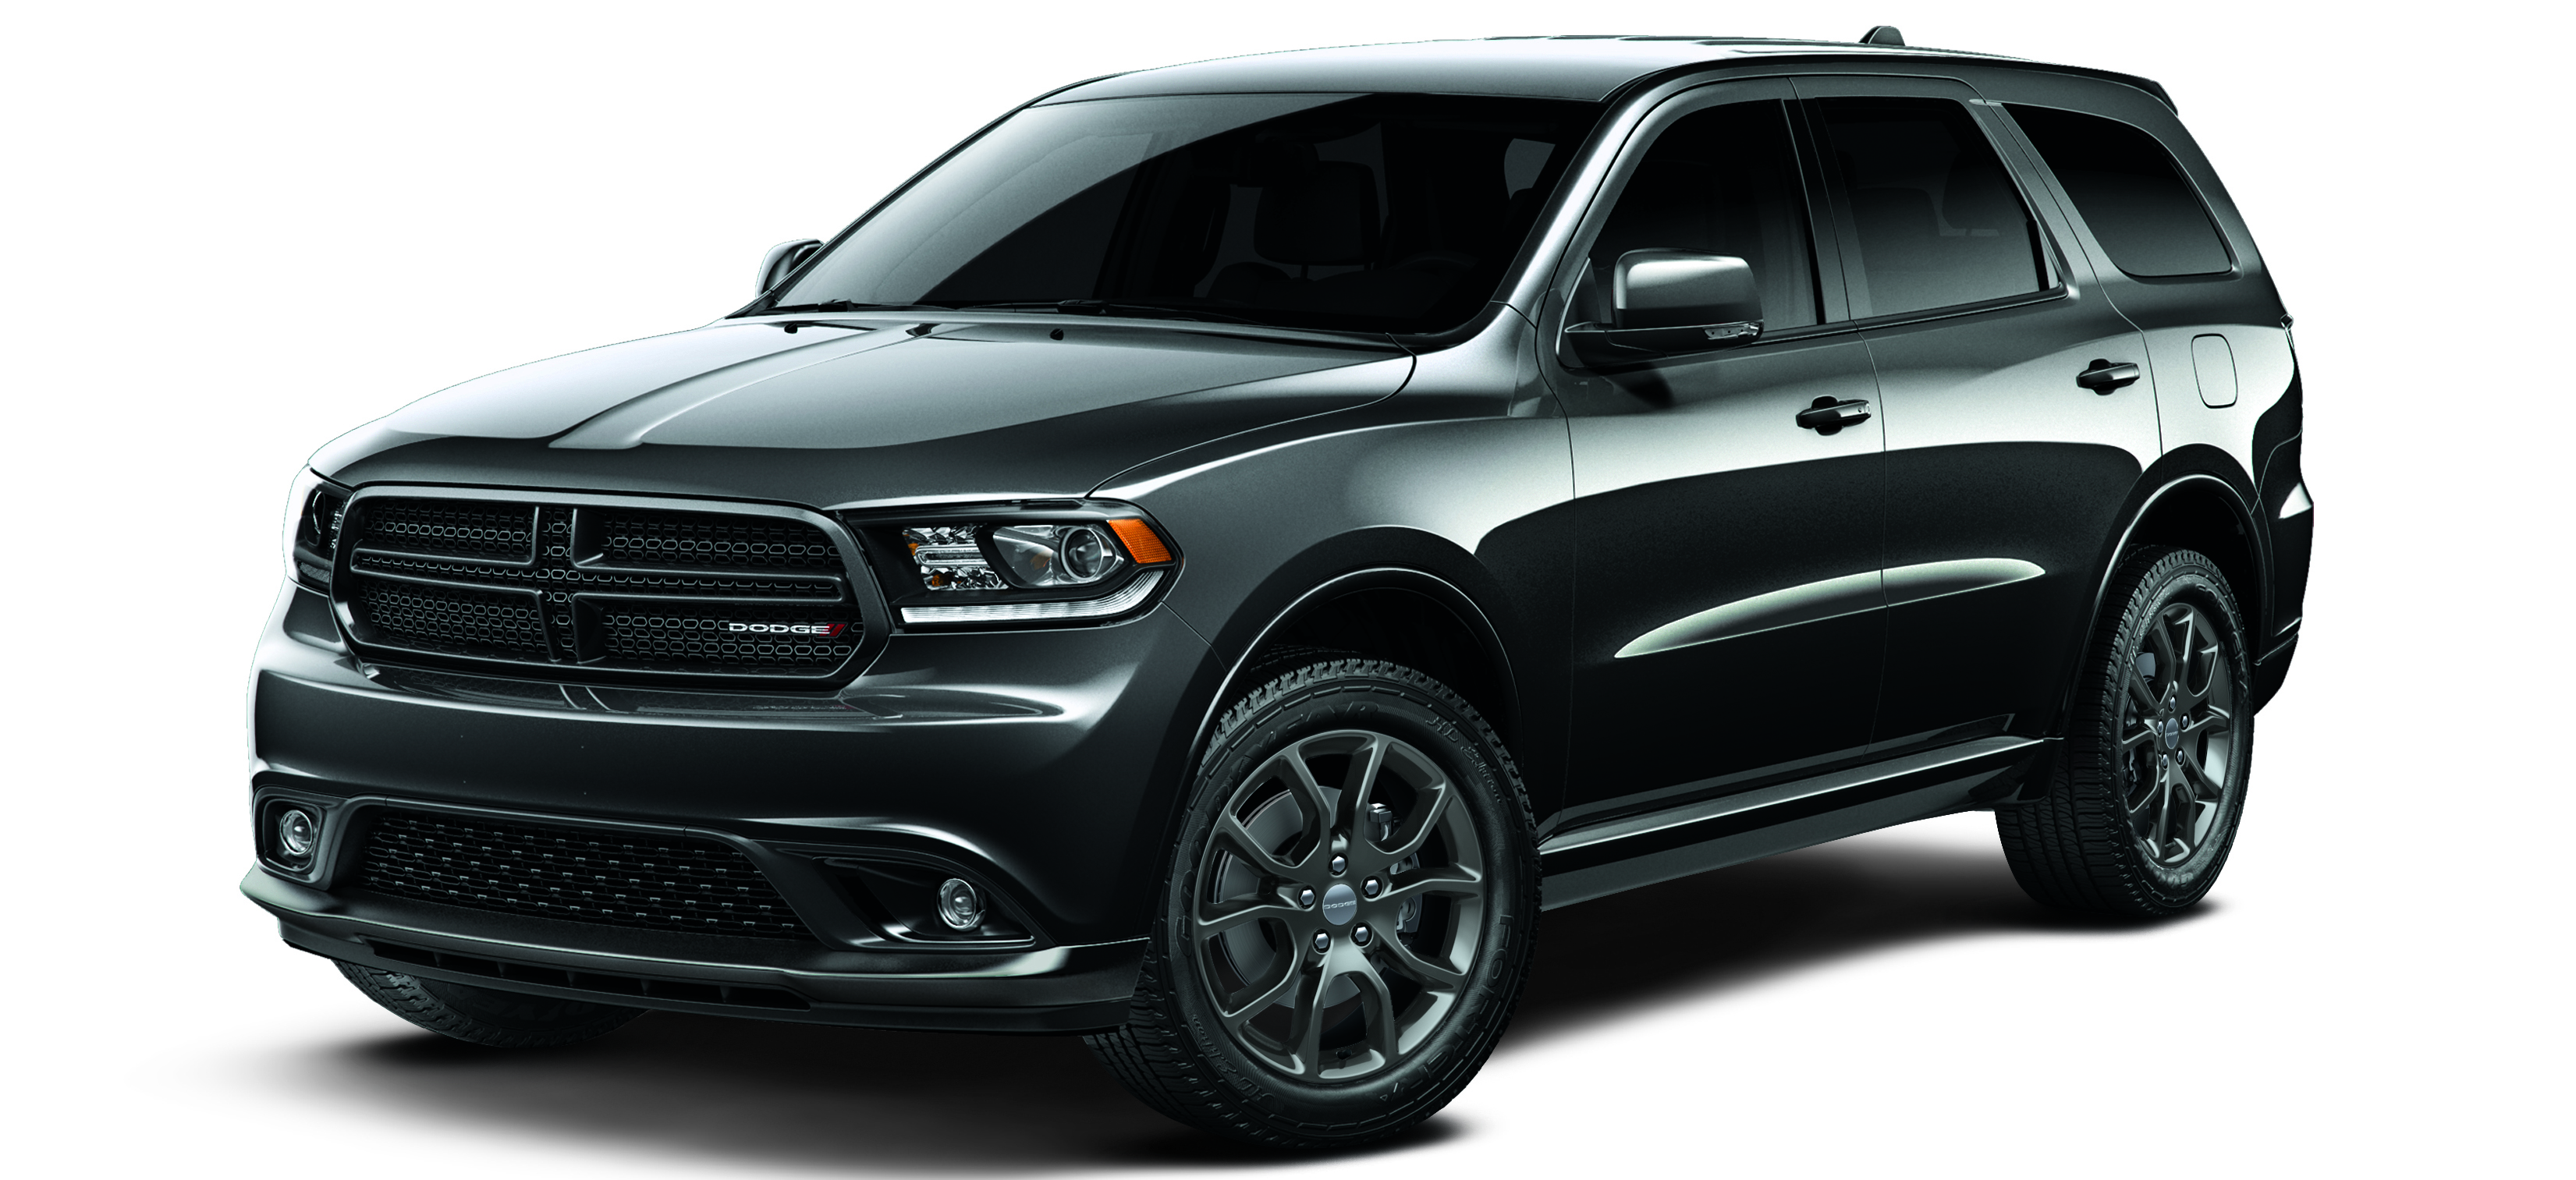 2017 dodge durango. Black Bedroom Furniture Sets. Home Design Ideas